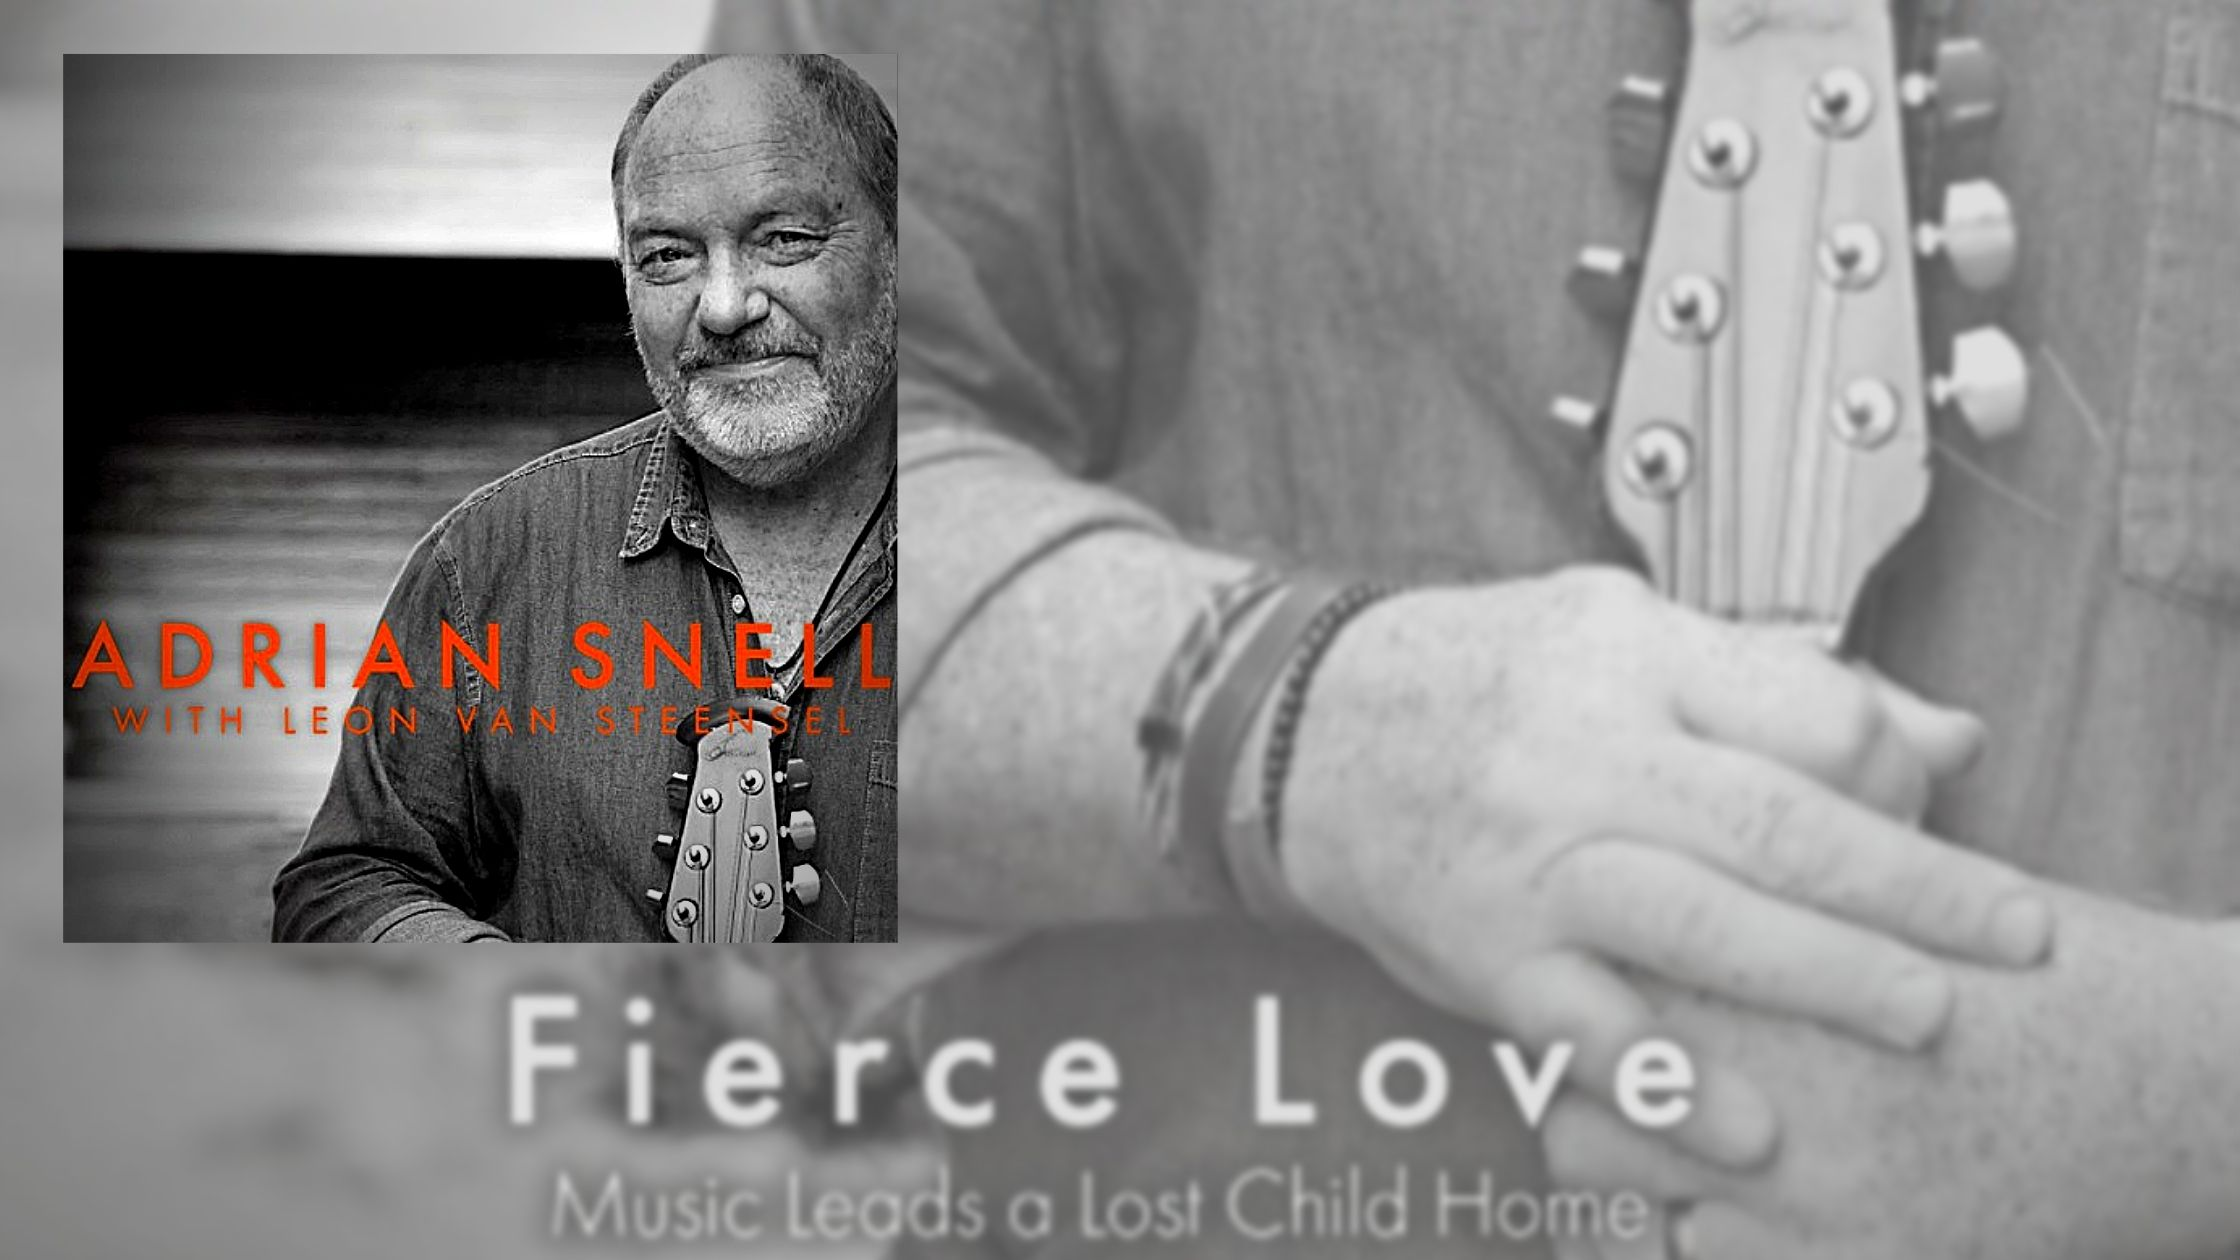 Fierce Love: Music Leads a Lost Child Home - a book that chronicles the life and music of Adrian Snell